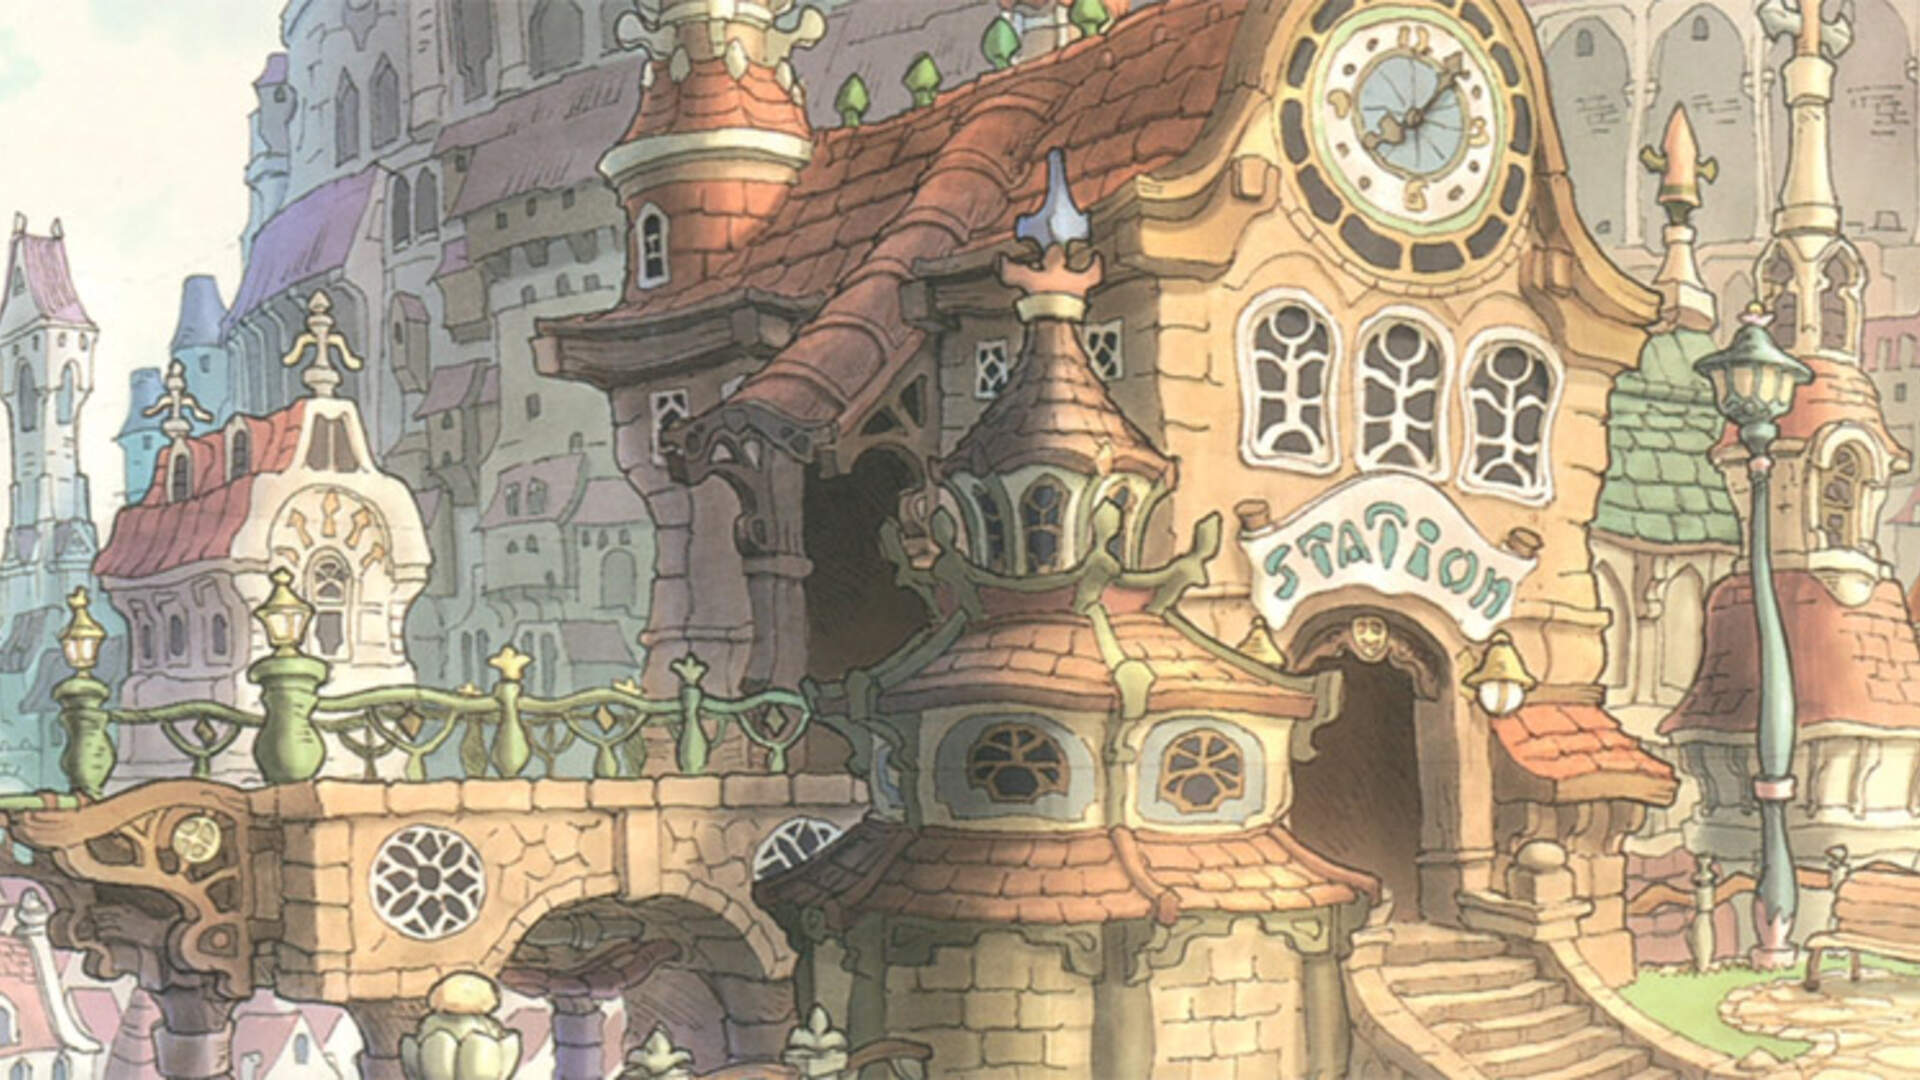 Final Fantasy IX is Re-releasing on PlayStation 4 - UPDATE: Out Now!